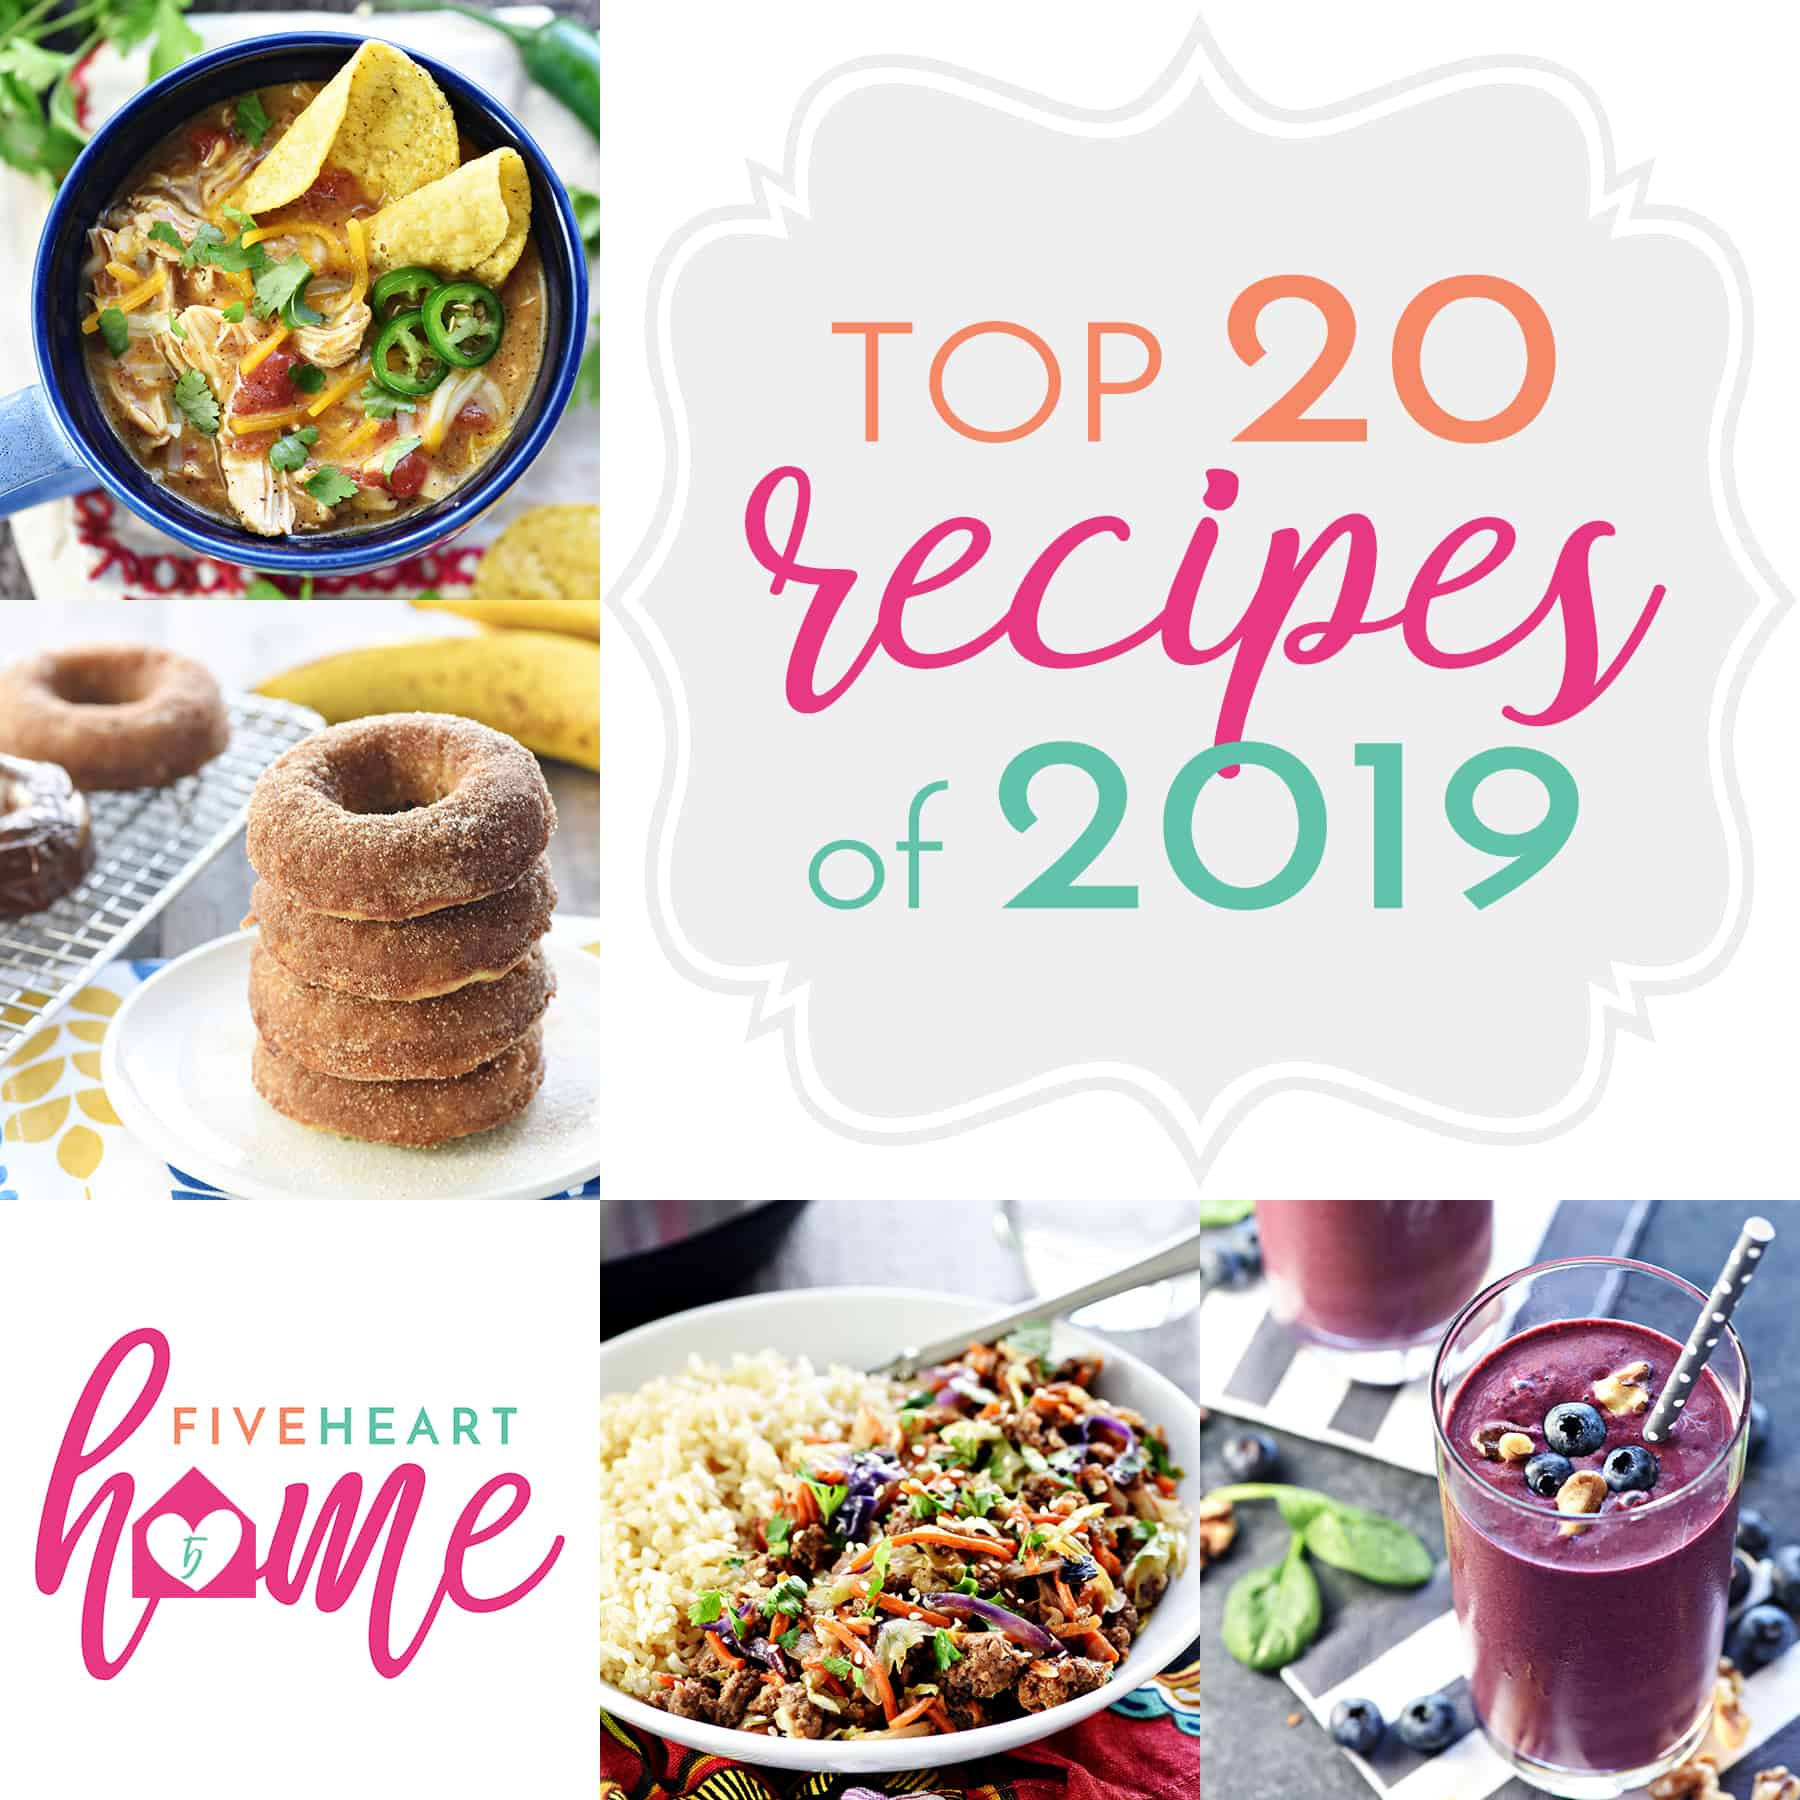 Five Heart Home Top 20 Recipes of 2019 Square Collage